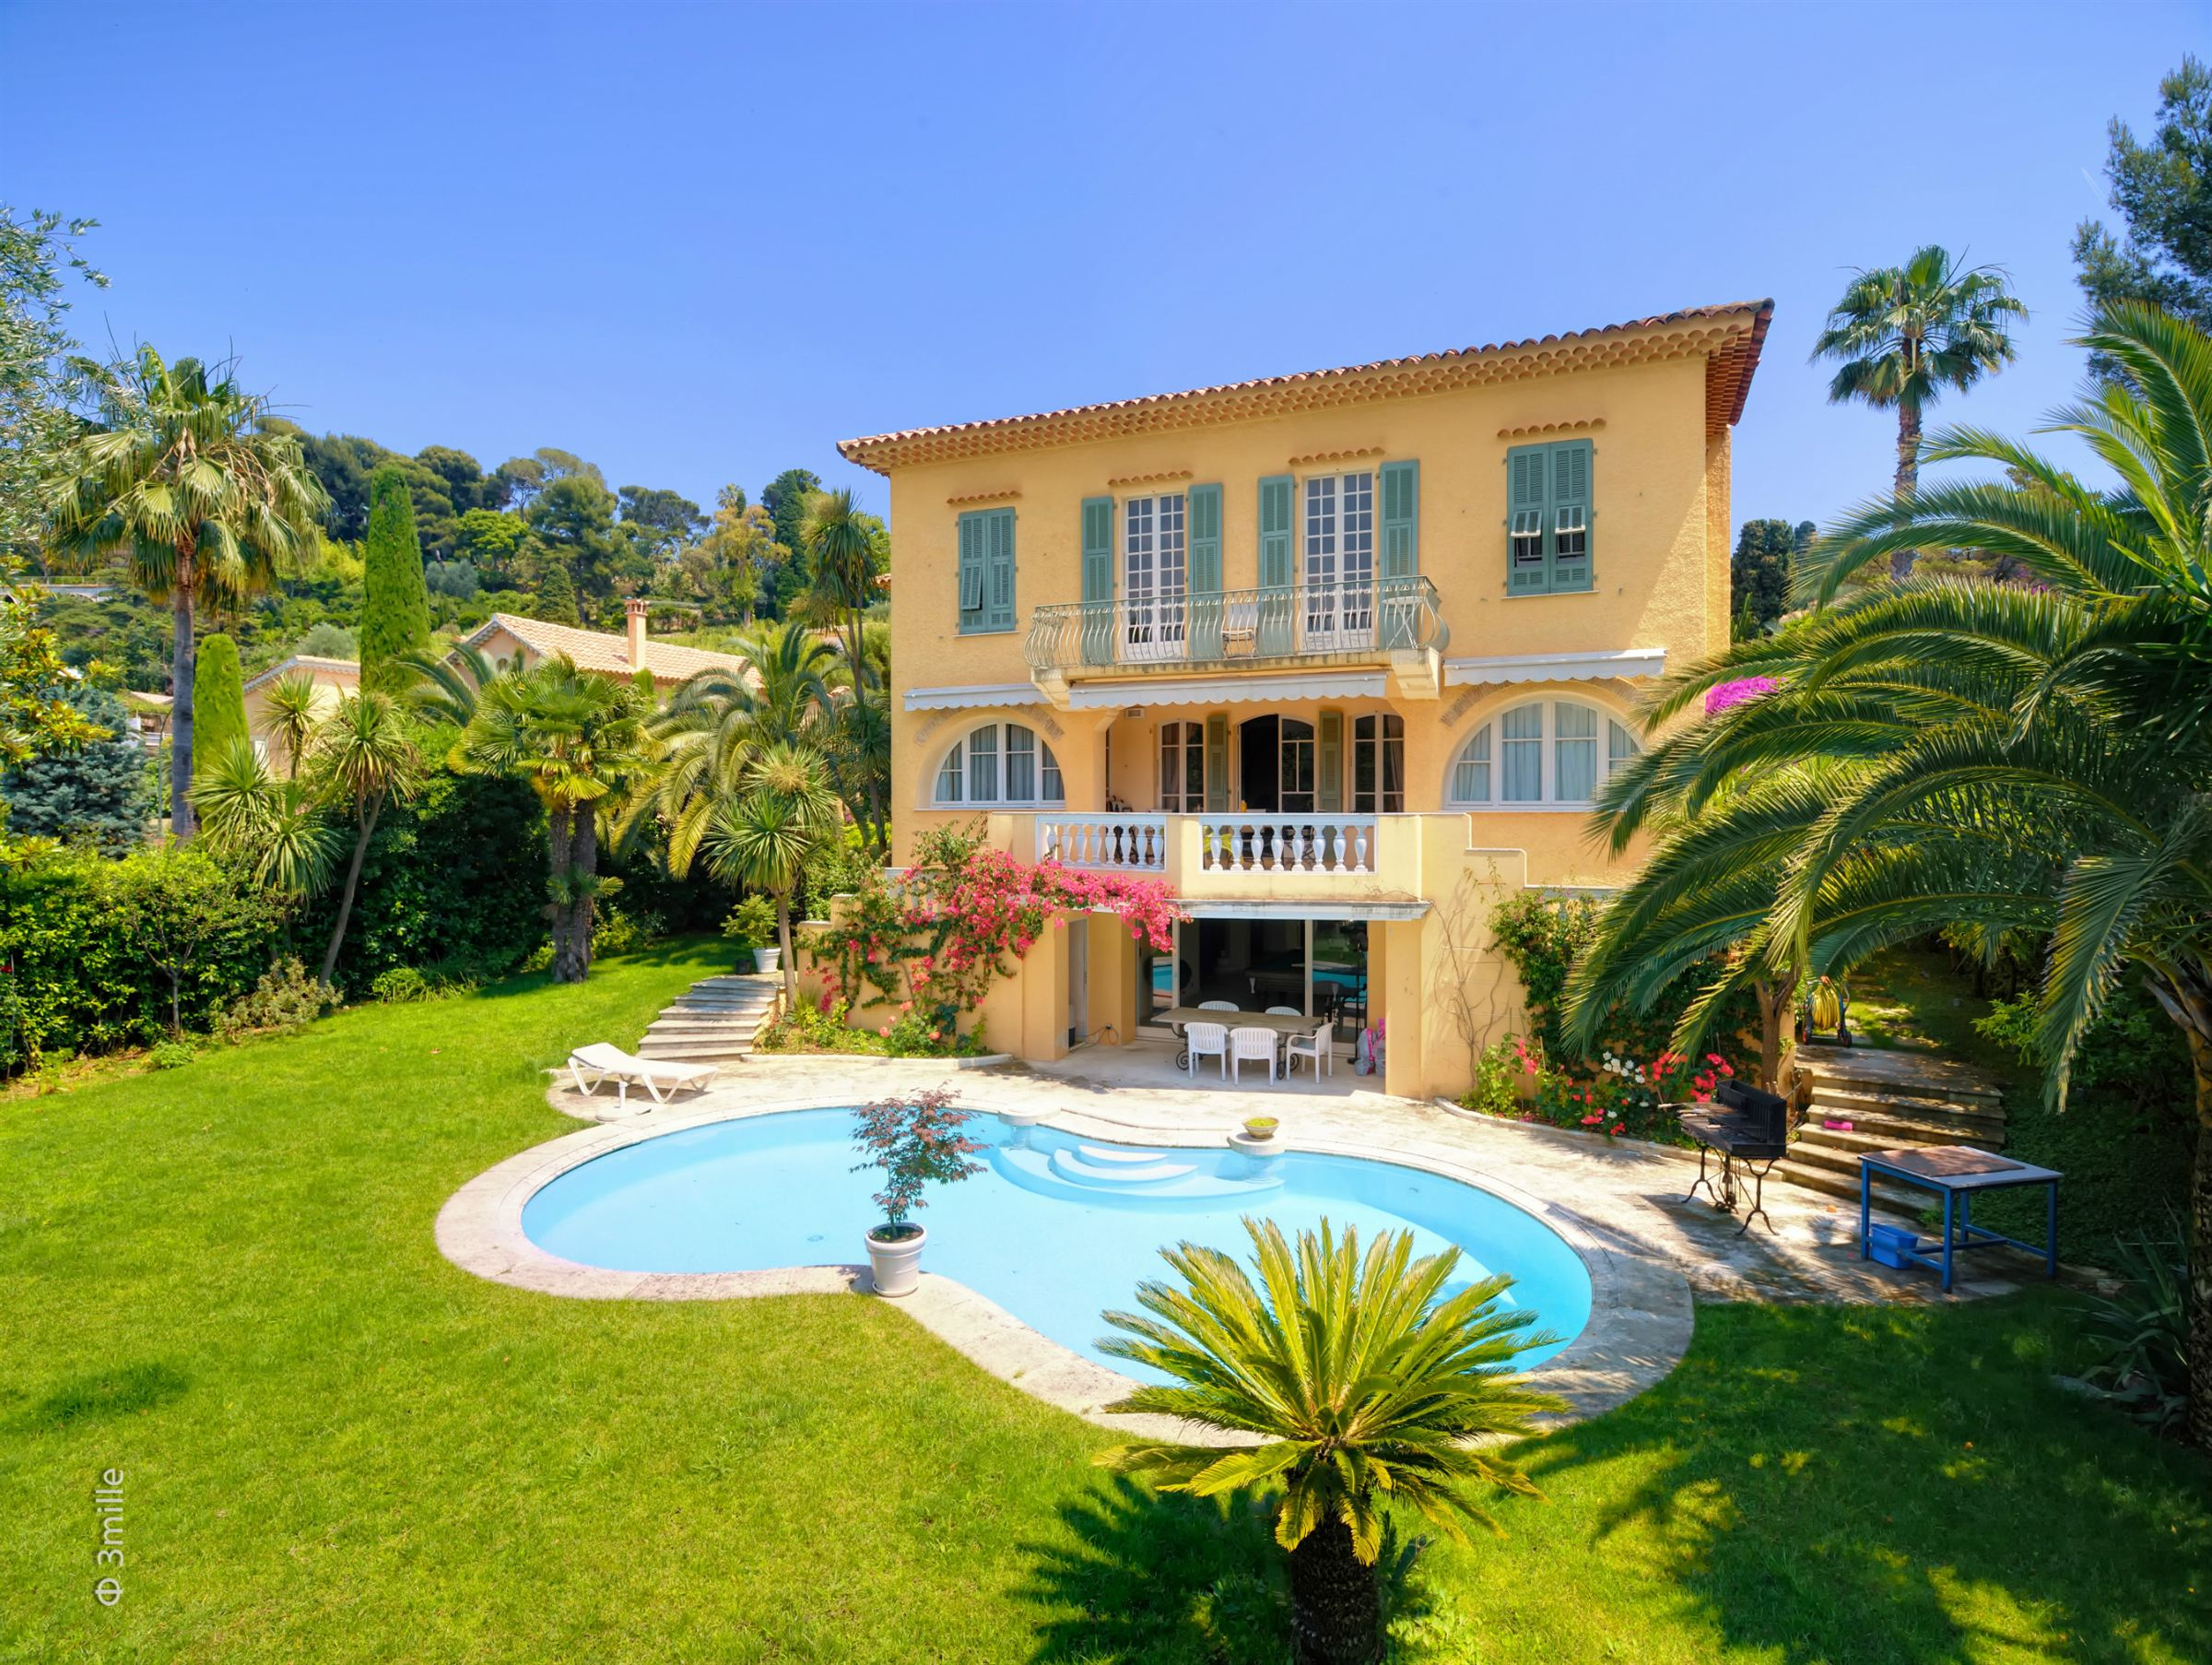 Single Family Home for Sale at Charming Villa for sale in a private domain, Cap Ferrat Other Provence-Alpes-Cote D'Azur, Provence-Alpes-Cote D'Azur, 06230 France